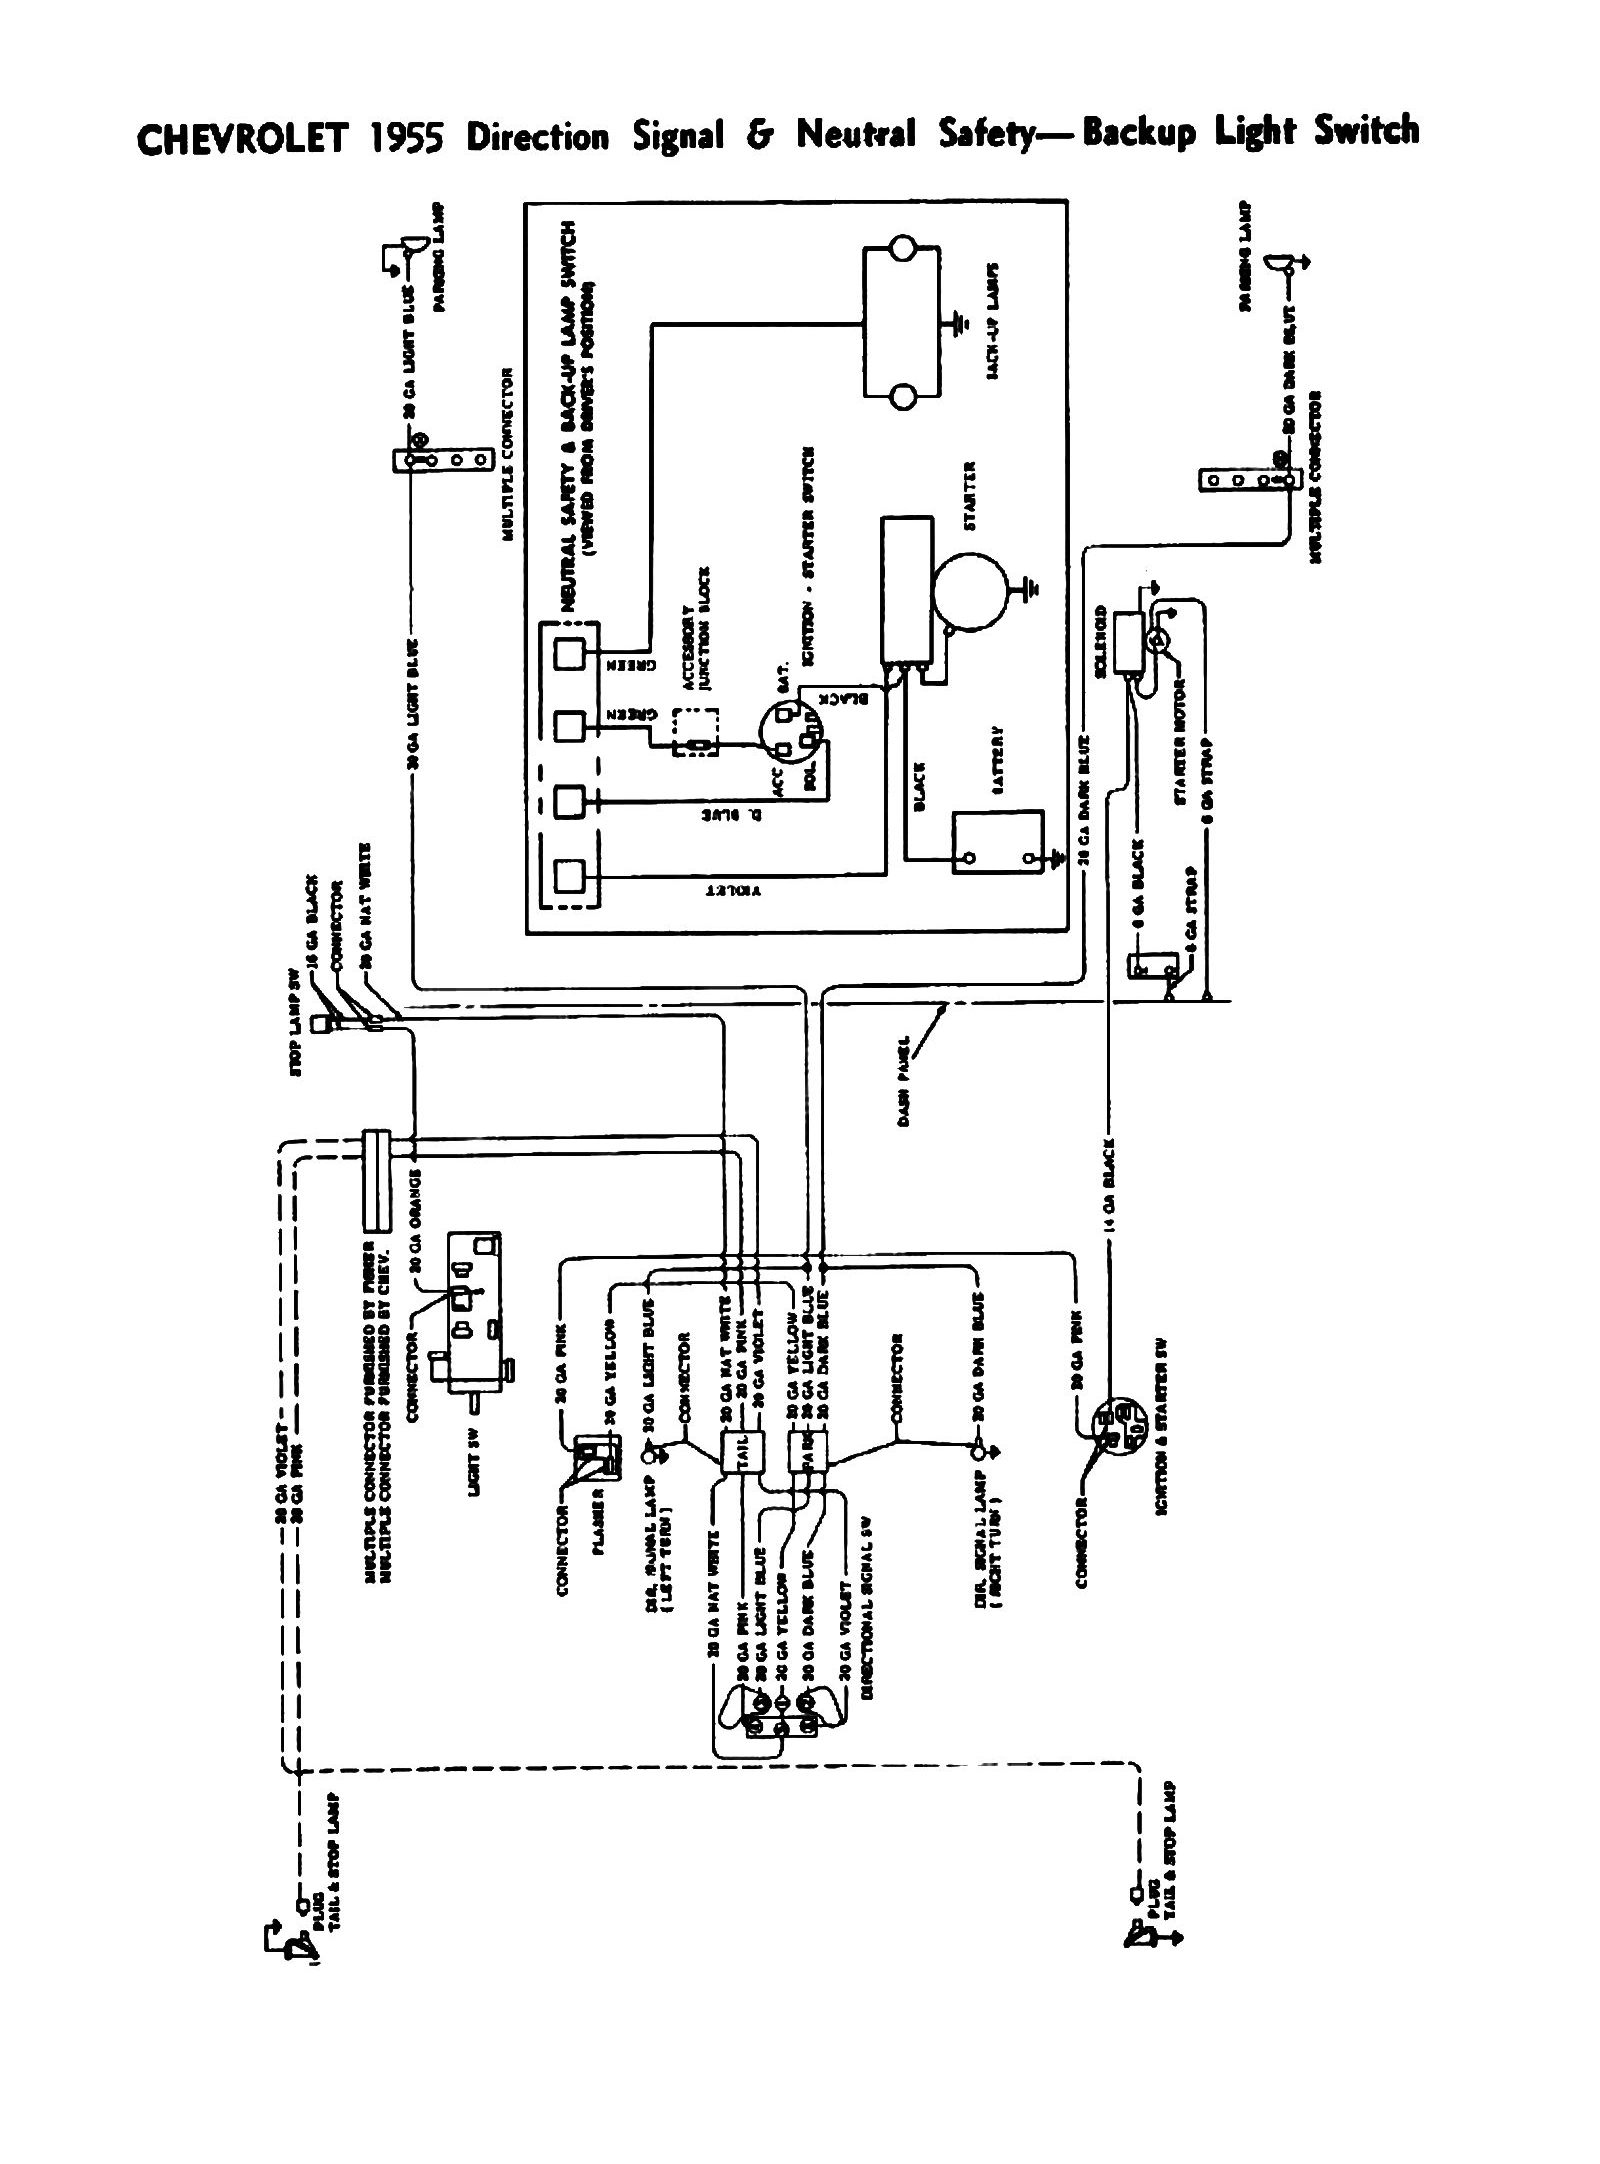 55signal wiring diagram for 1955 chevy bel air readingrat net 1956 chevy steering column wiring diagram at n-0.co